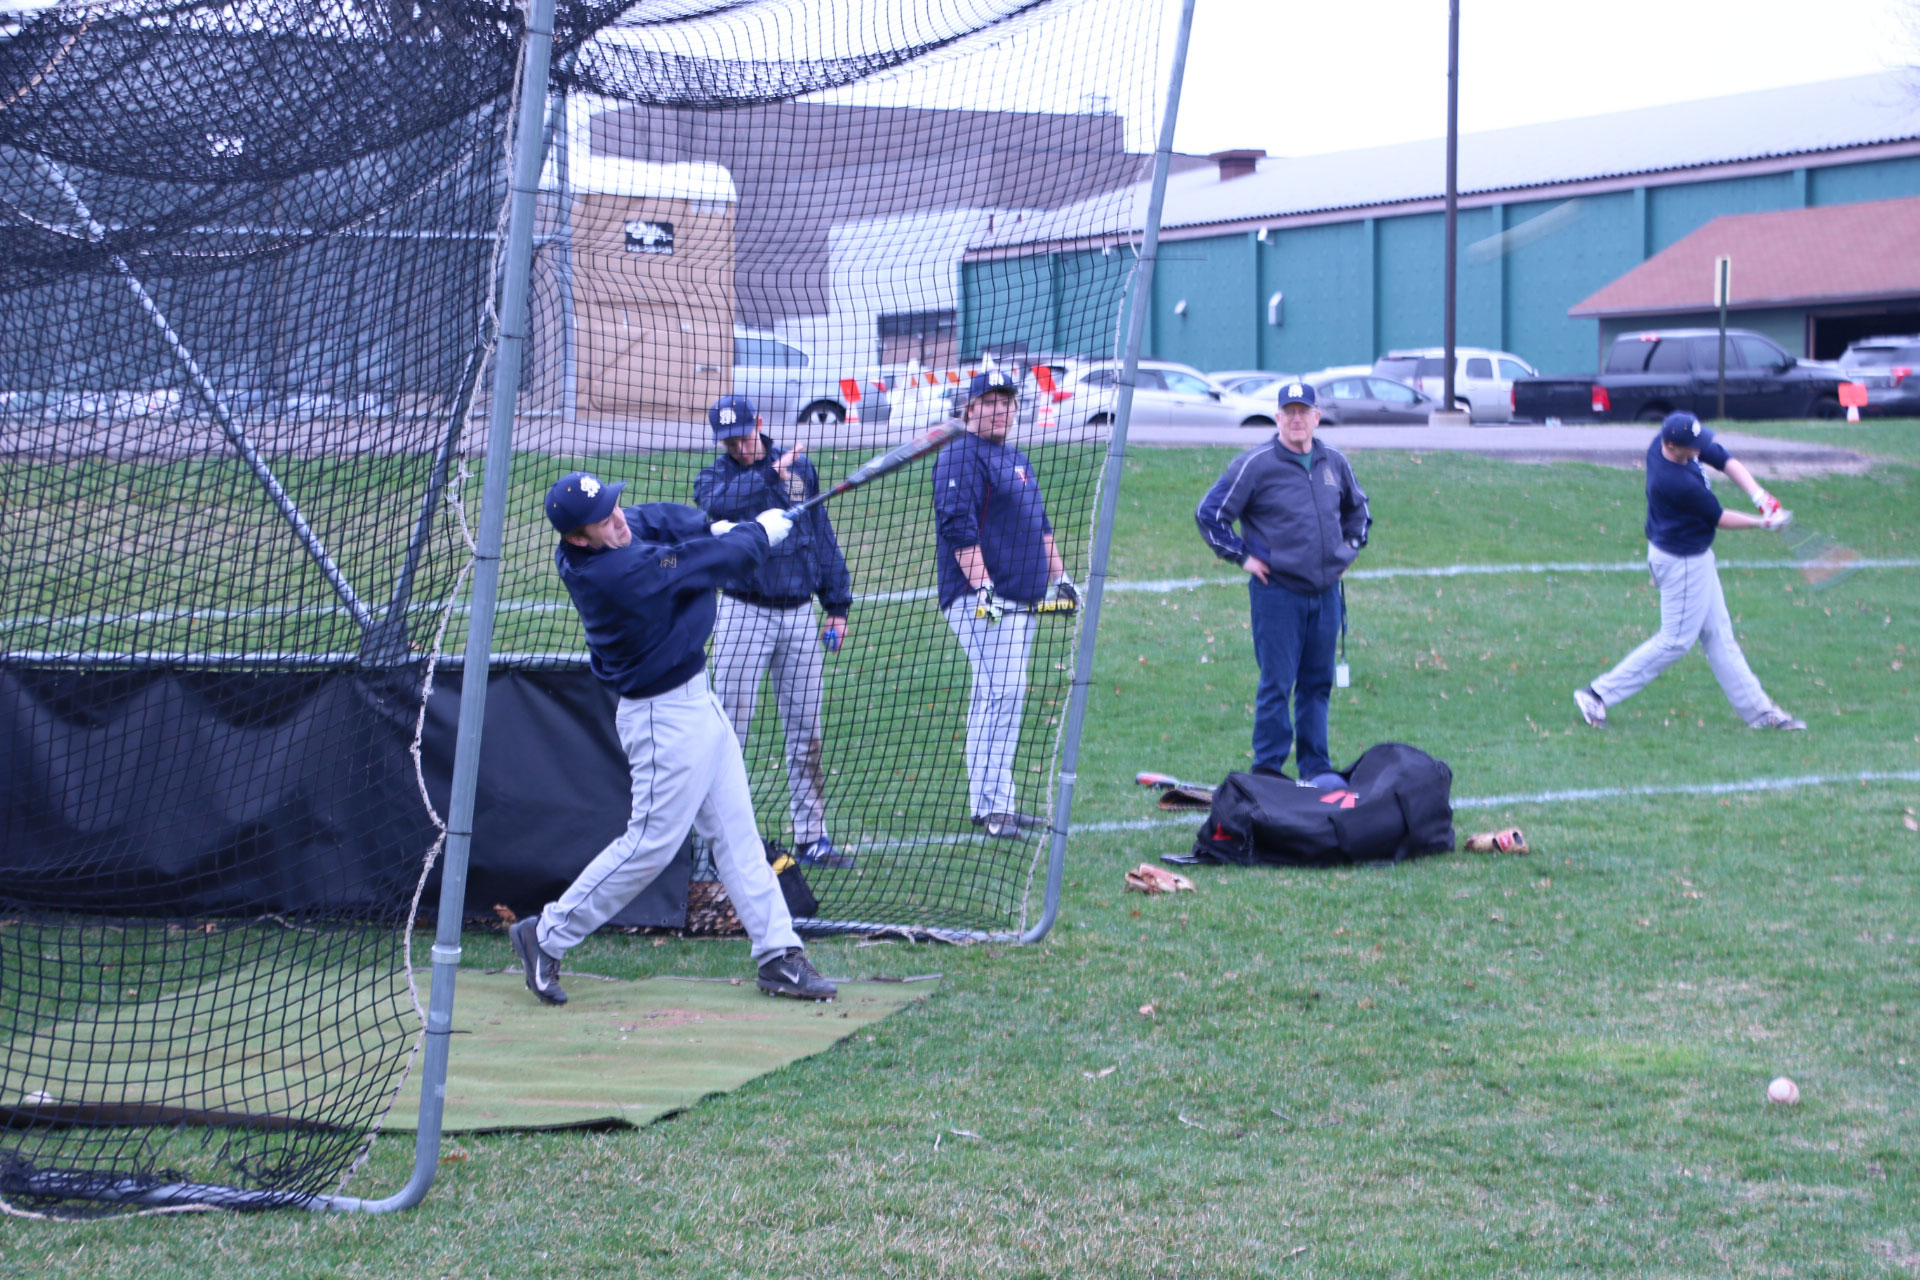 Senior captain Riley Bowman practices hitting baseballs in the batting cage.